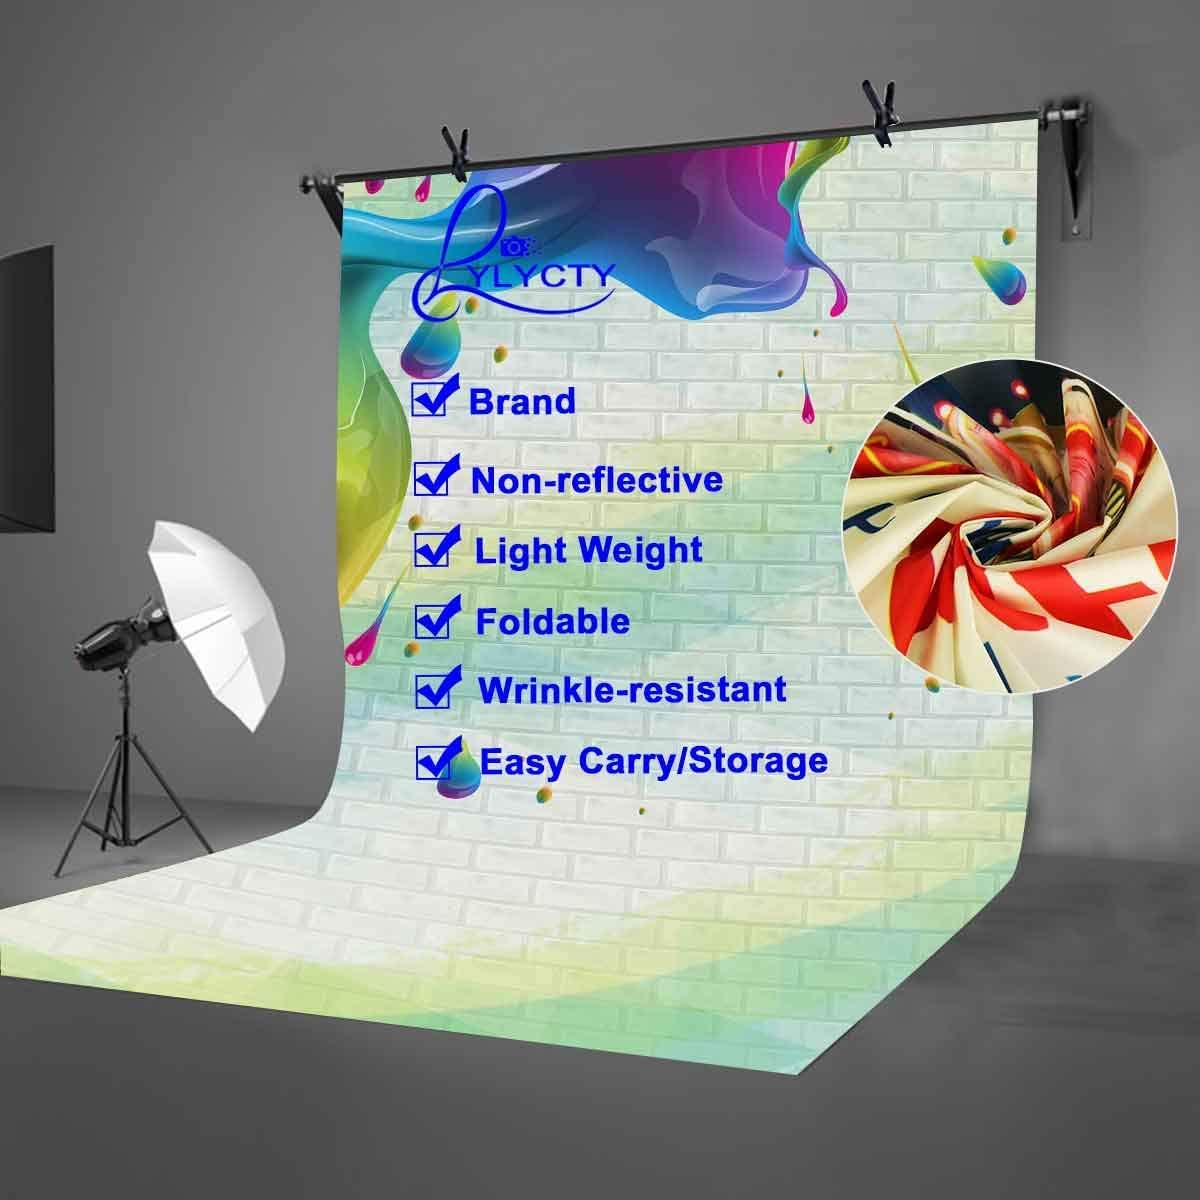 CdHBH 5x7ft Brick Wall Backdrop Colorful Paints Pour Down Photography Backdrop Art Studio Photography Background Props Studio Display Mural LYLF002